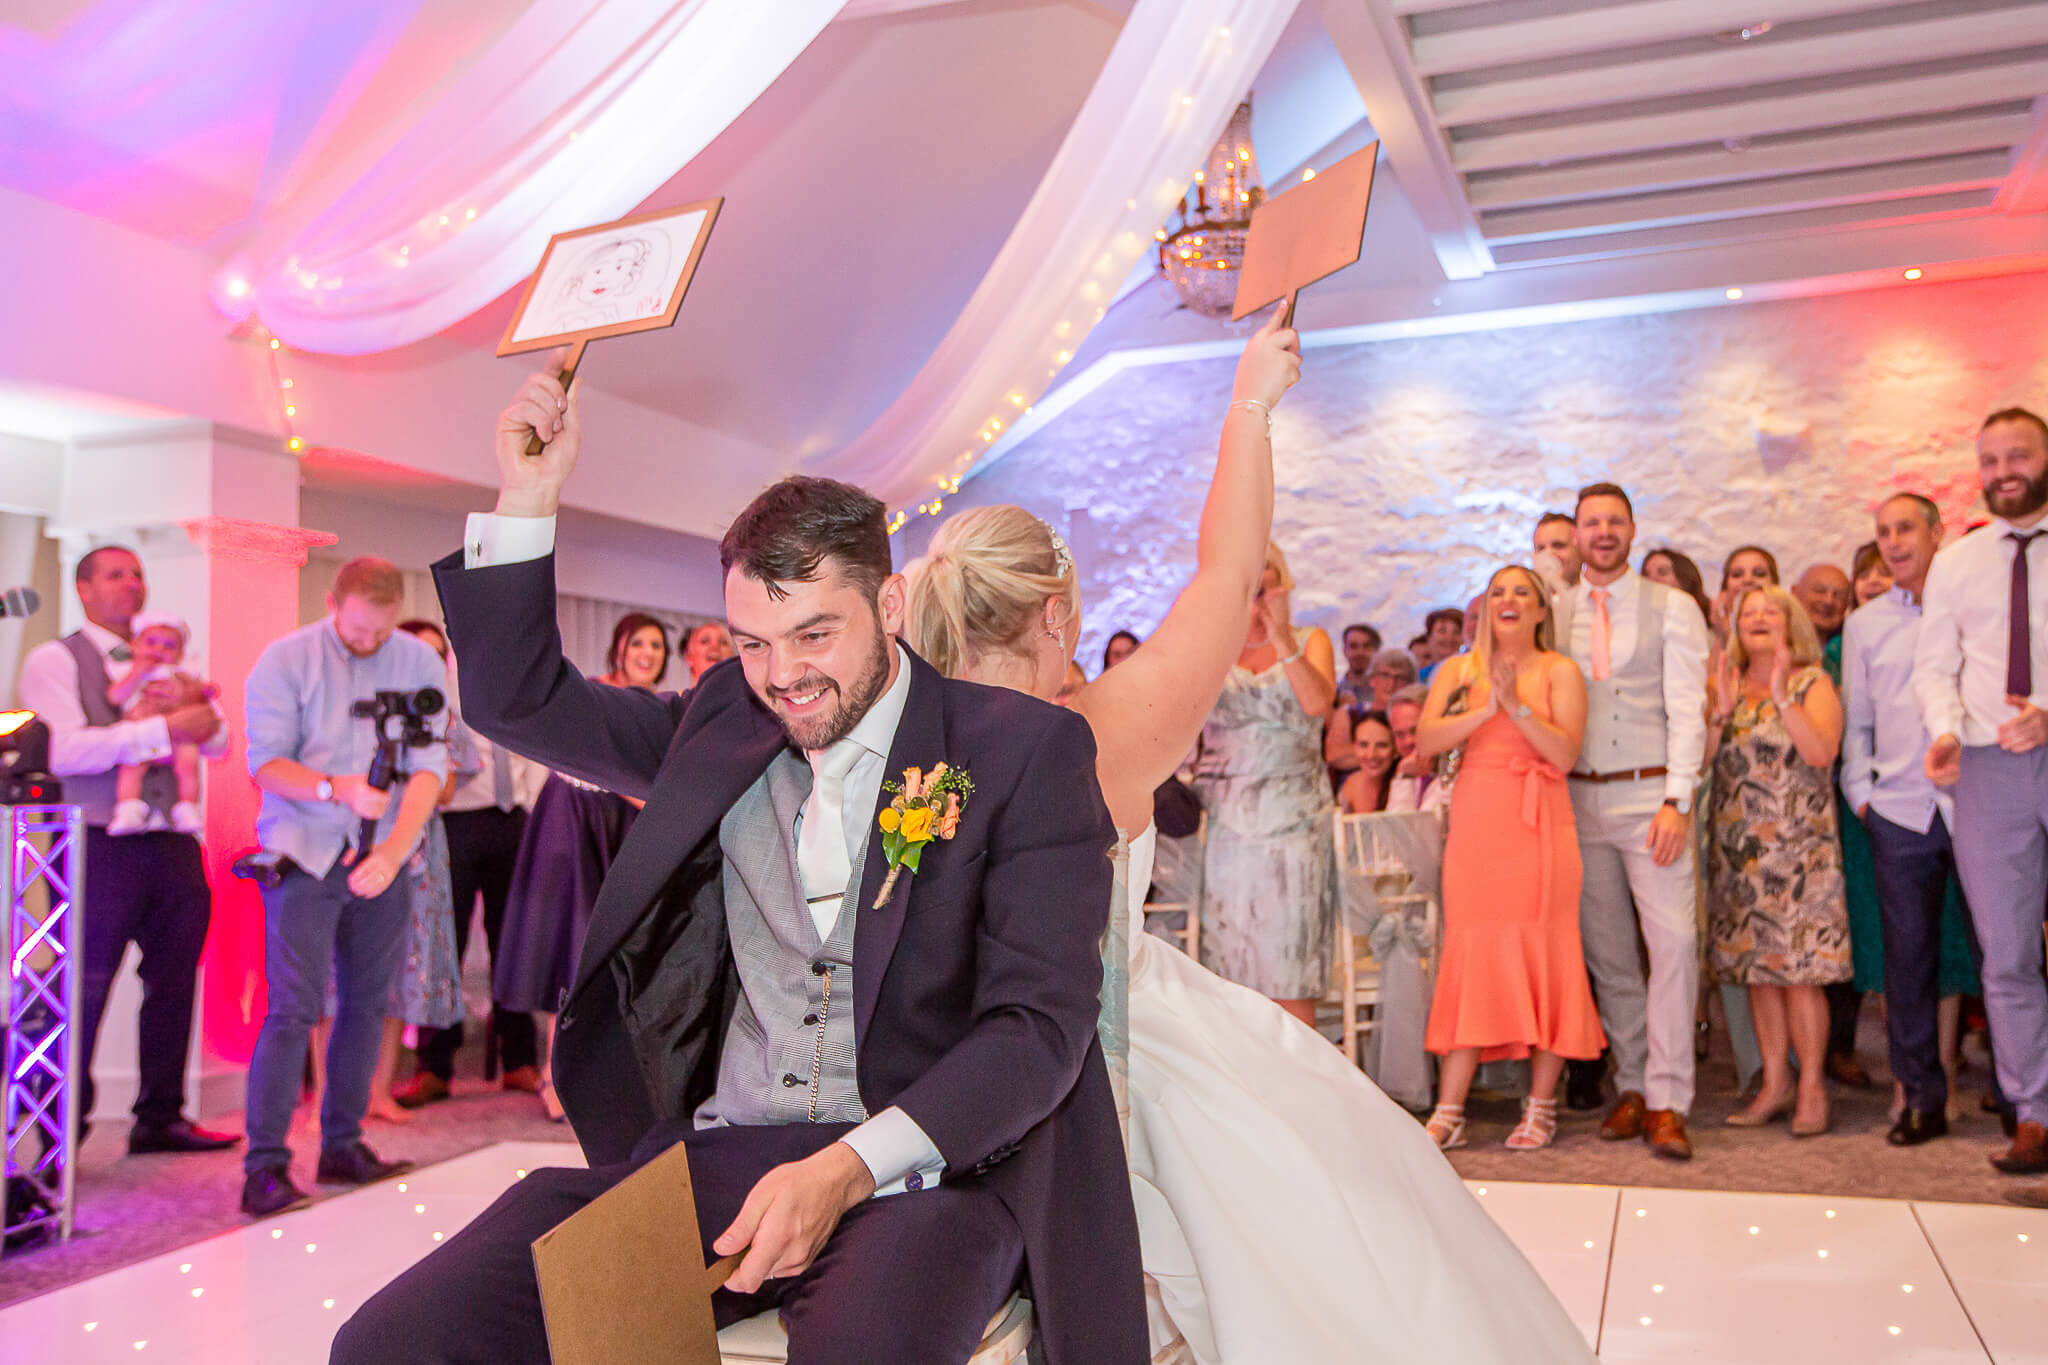 best-wedding-photographers-uk-europe-stanbury-photography-125